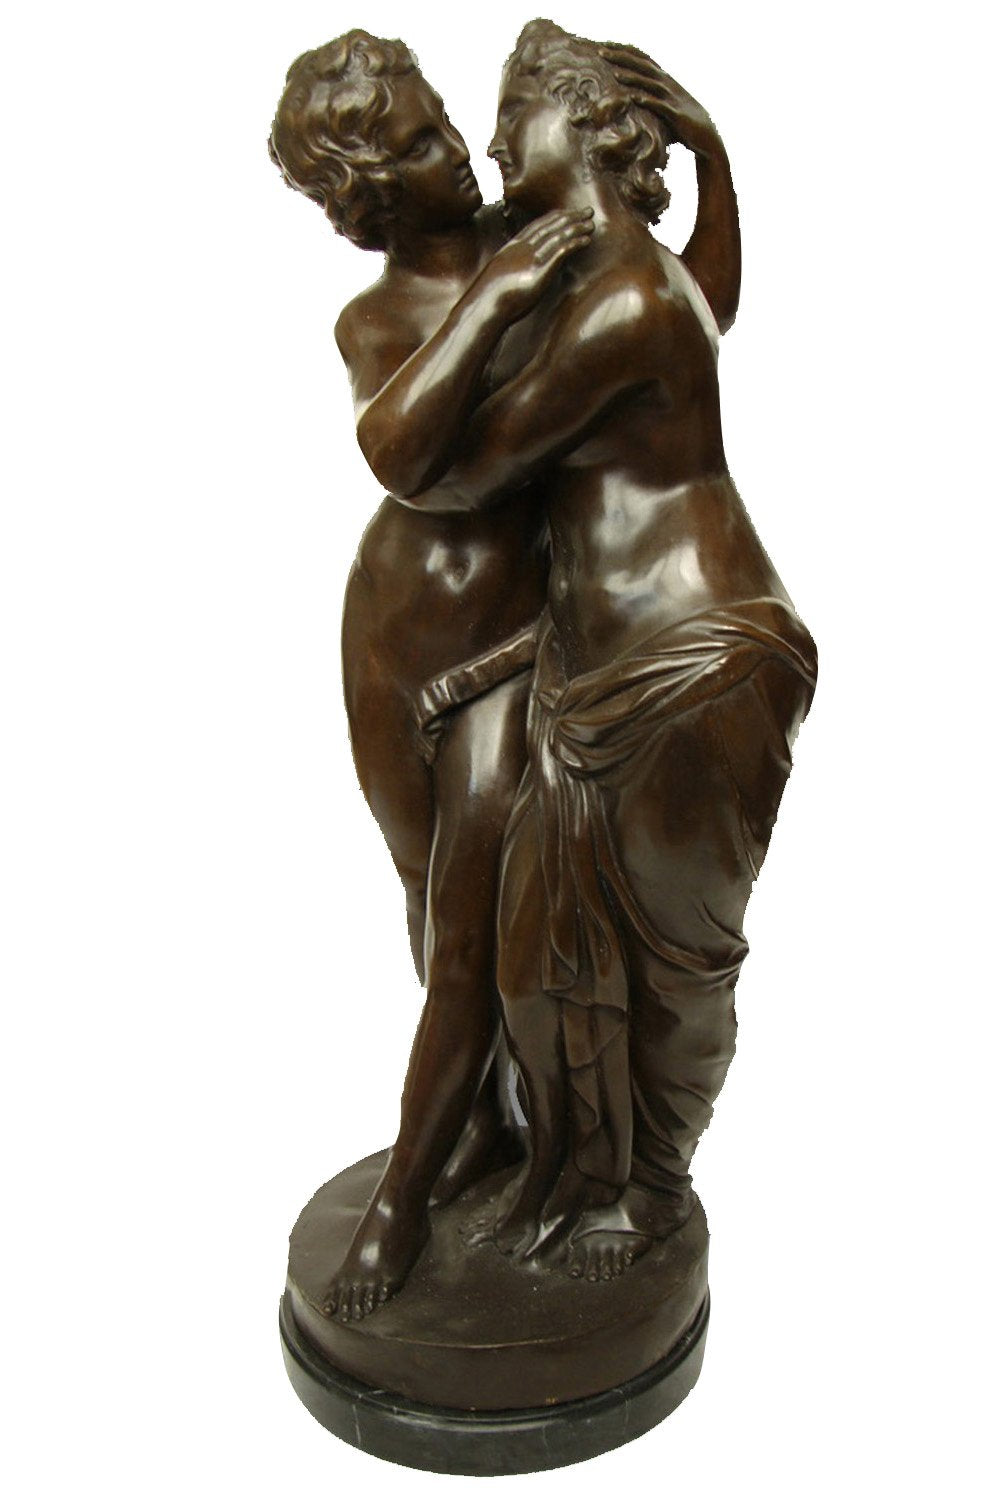 TPY-327 bronze sculpture